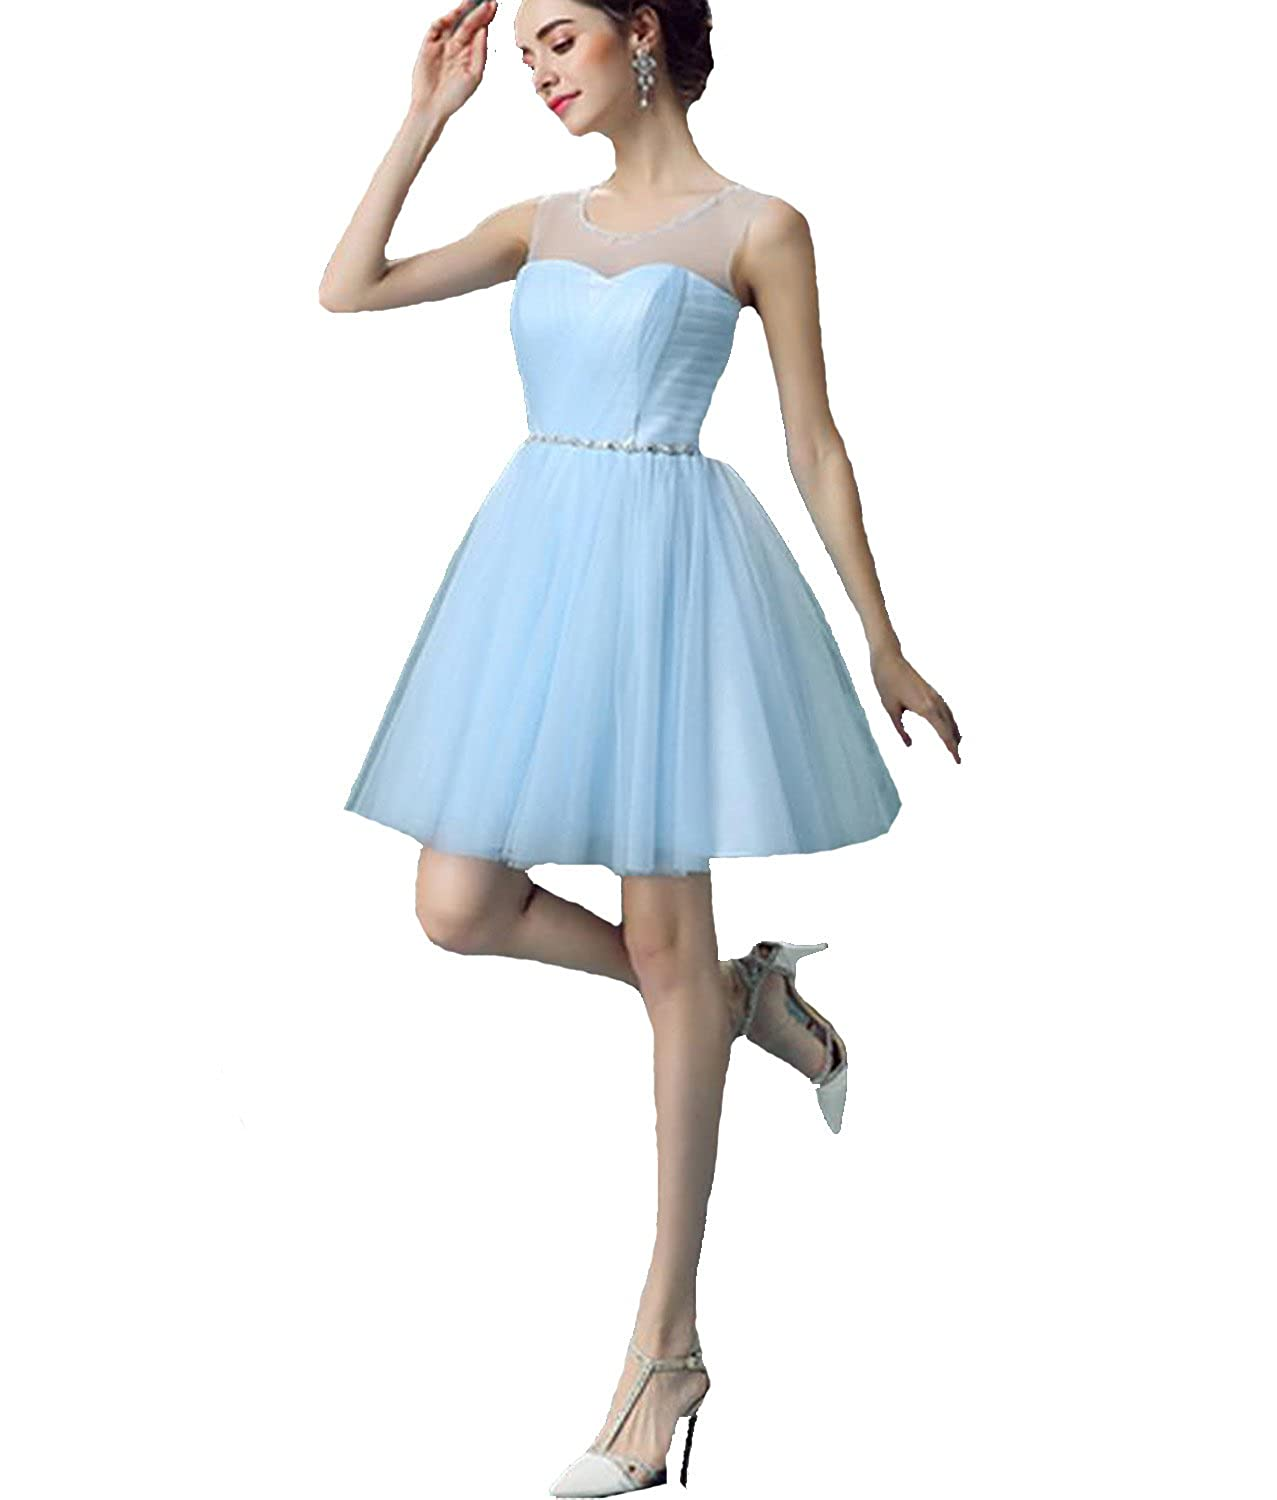 QUEEN CLUB New Fashion Light Blue Tulle Homecoming Dresses